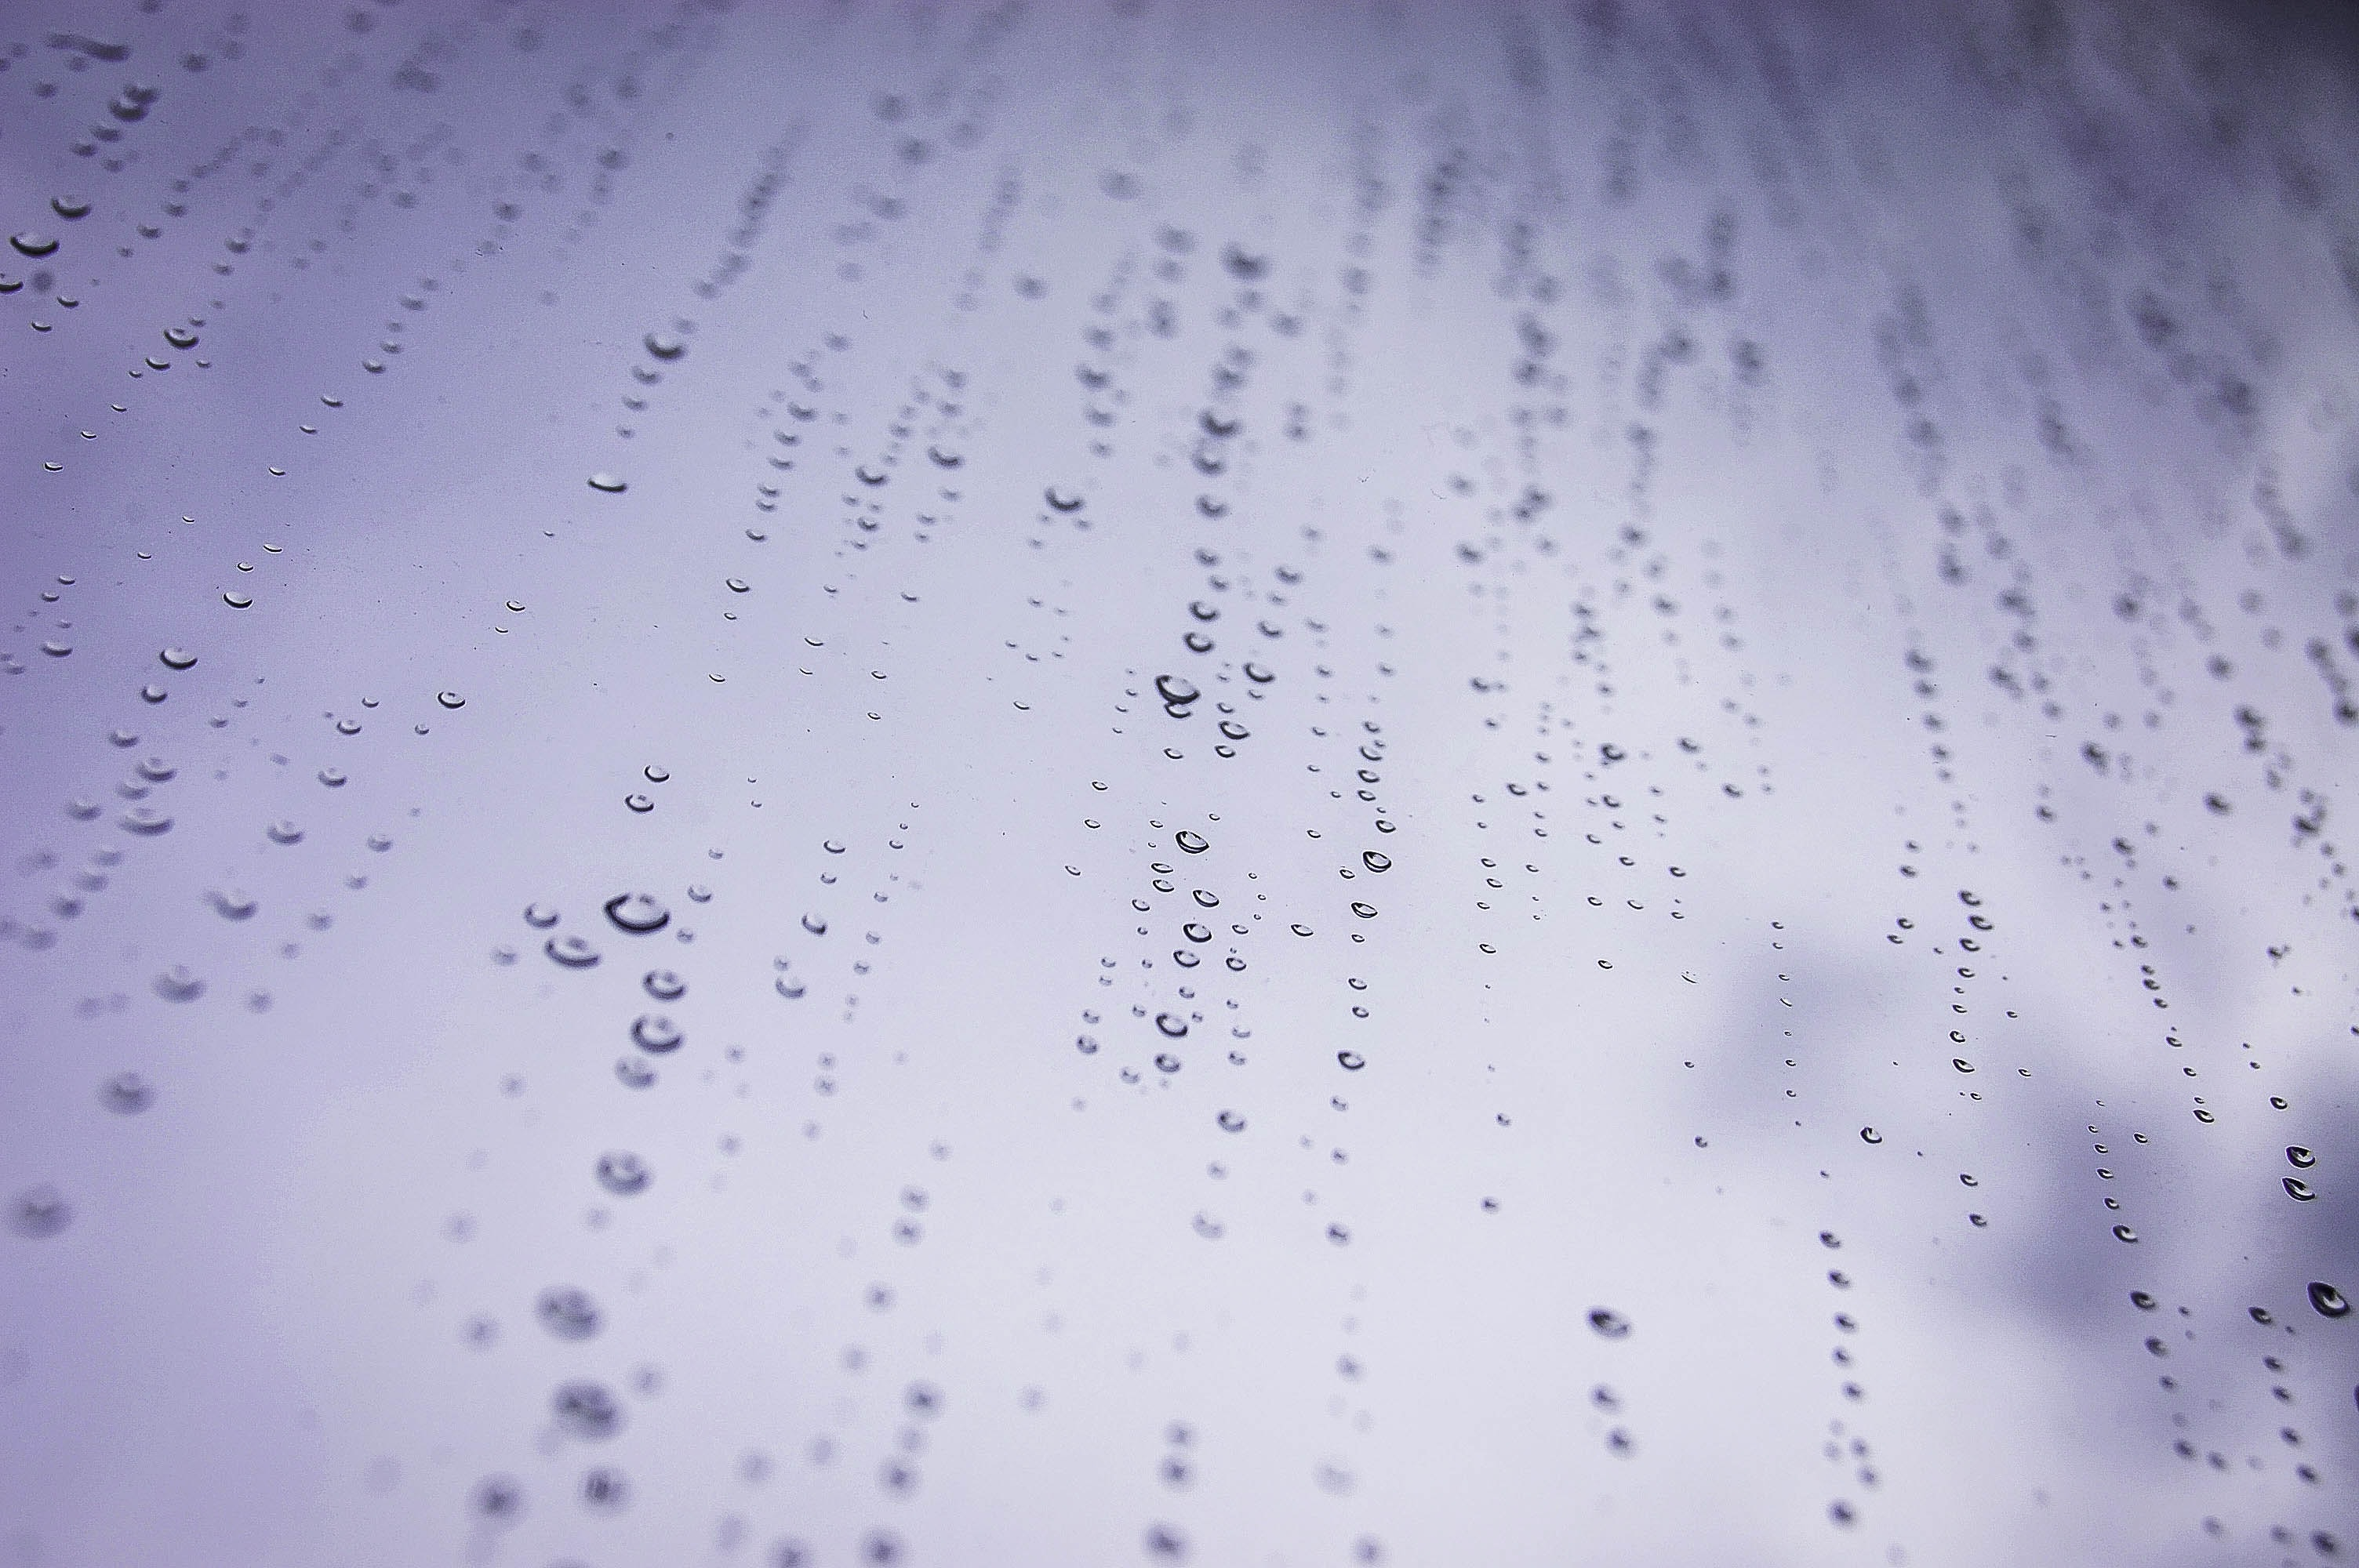 macro photograph of water dew drops on glass panel